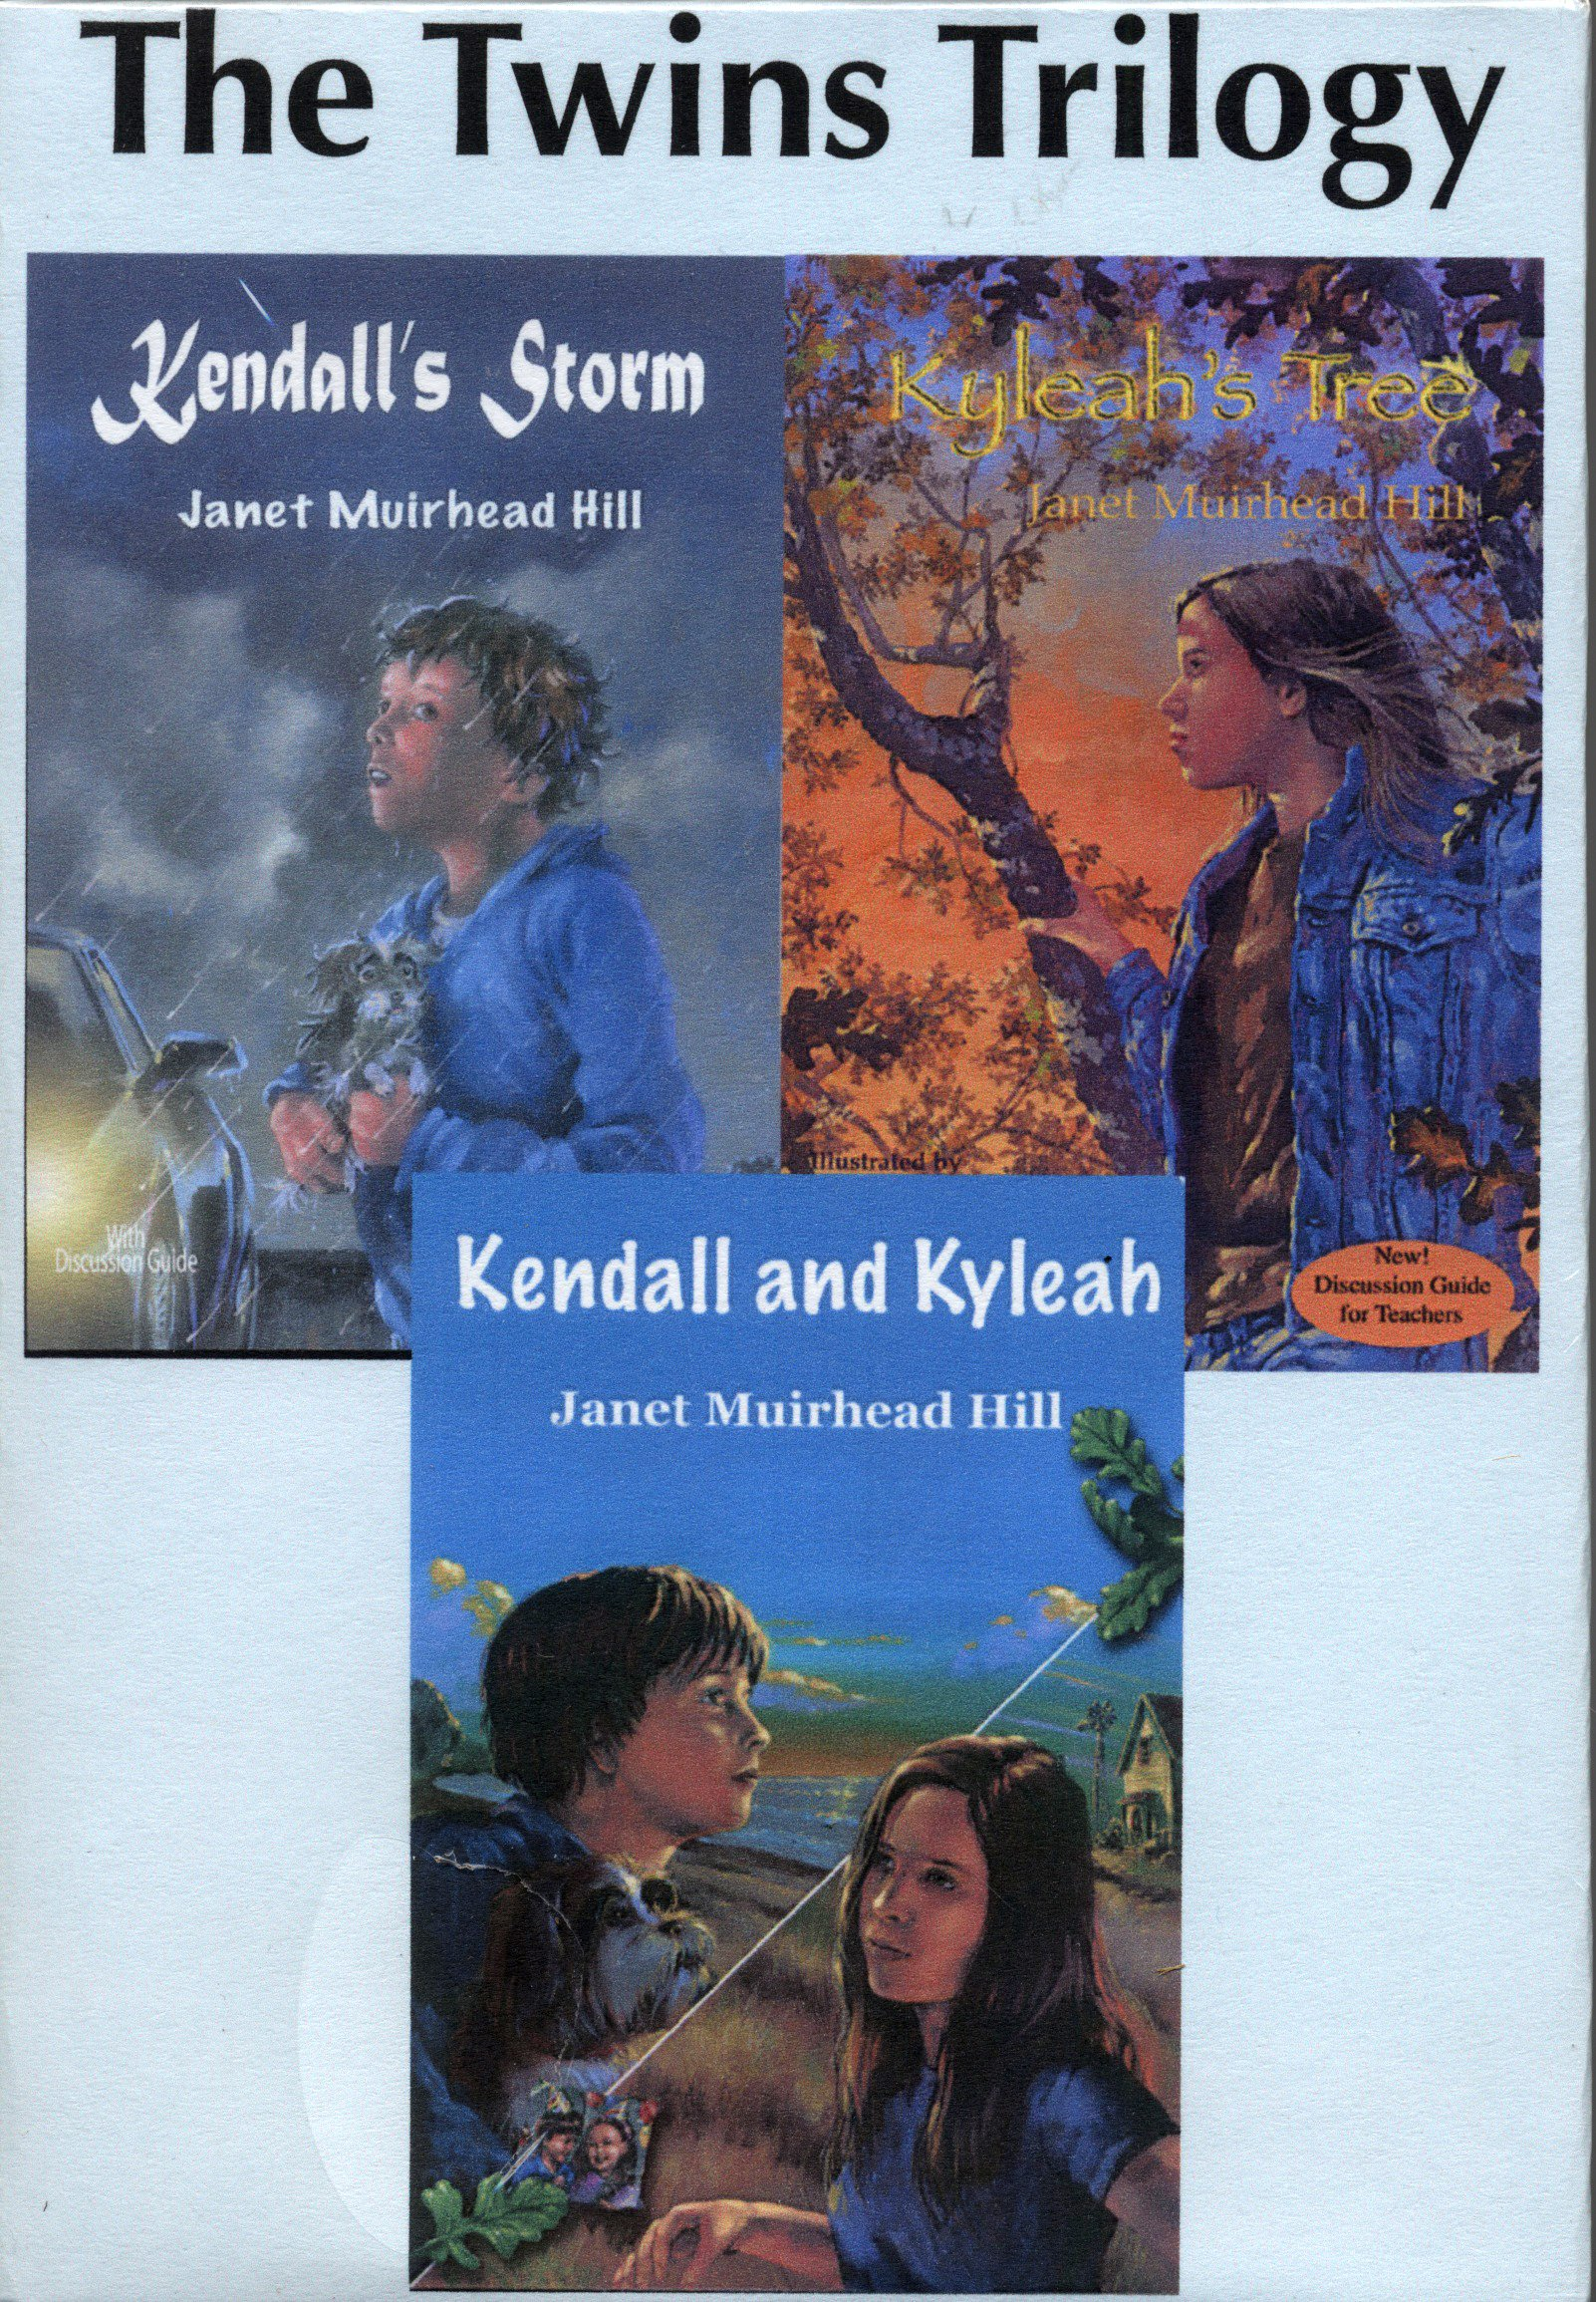 Read Online The Trilogy of Twins PDF Text fb2 book